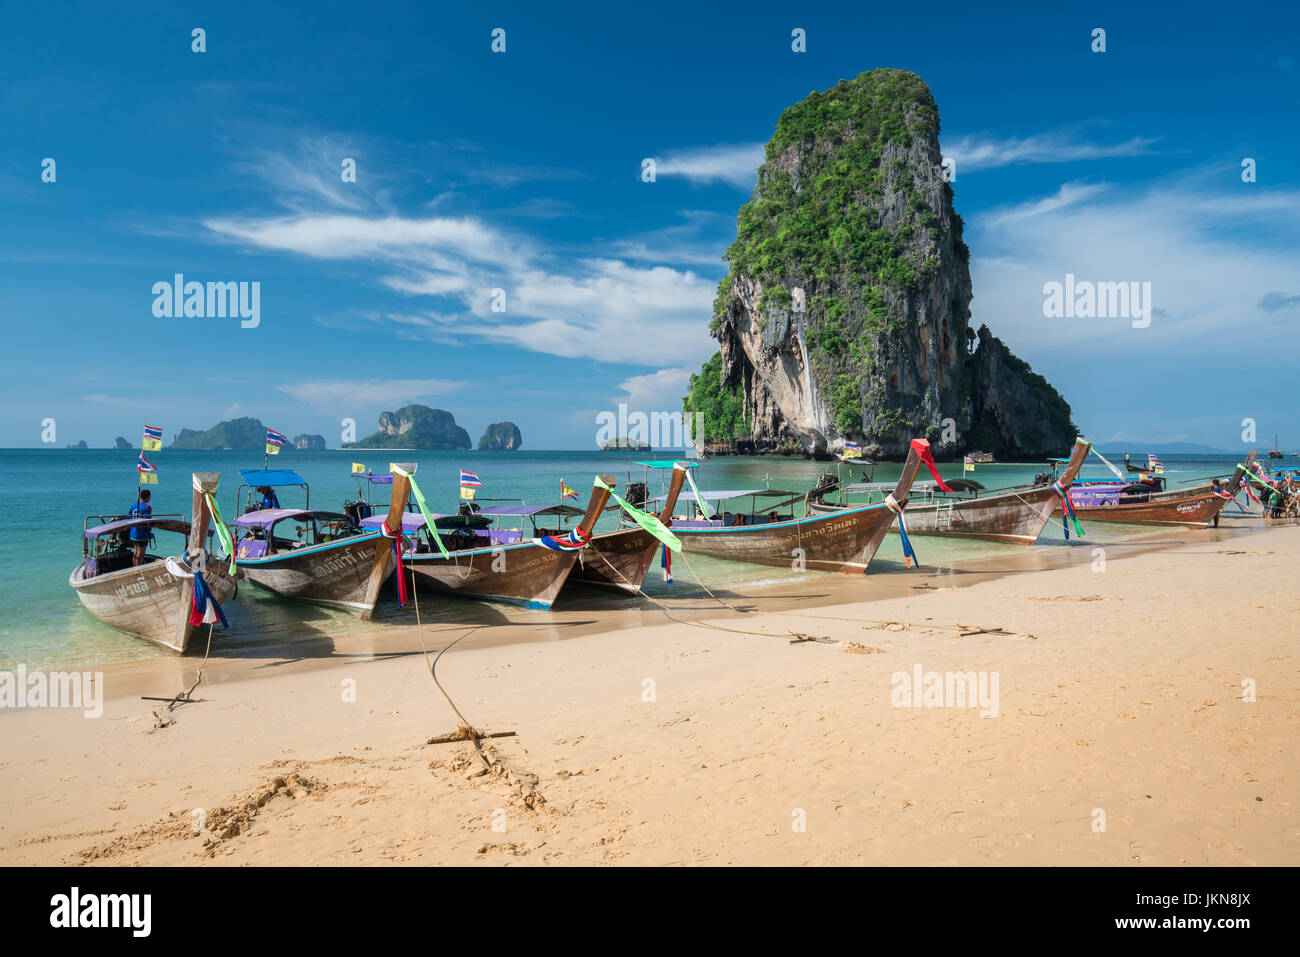 KRABI, THAILAND - DECEMBER 5 : Colorful long tail boats at beautiful Ao Nang beach on a background of blue sky and - Stock Image